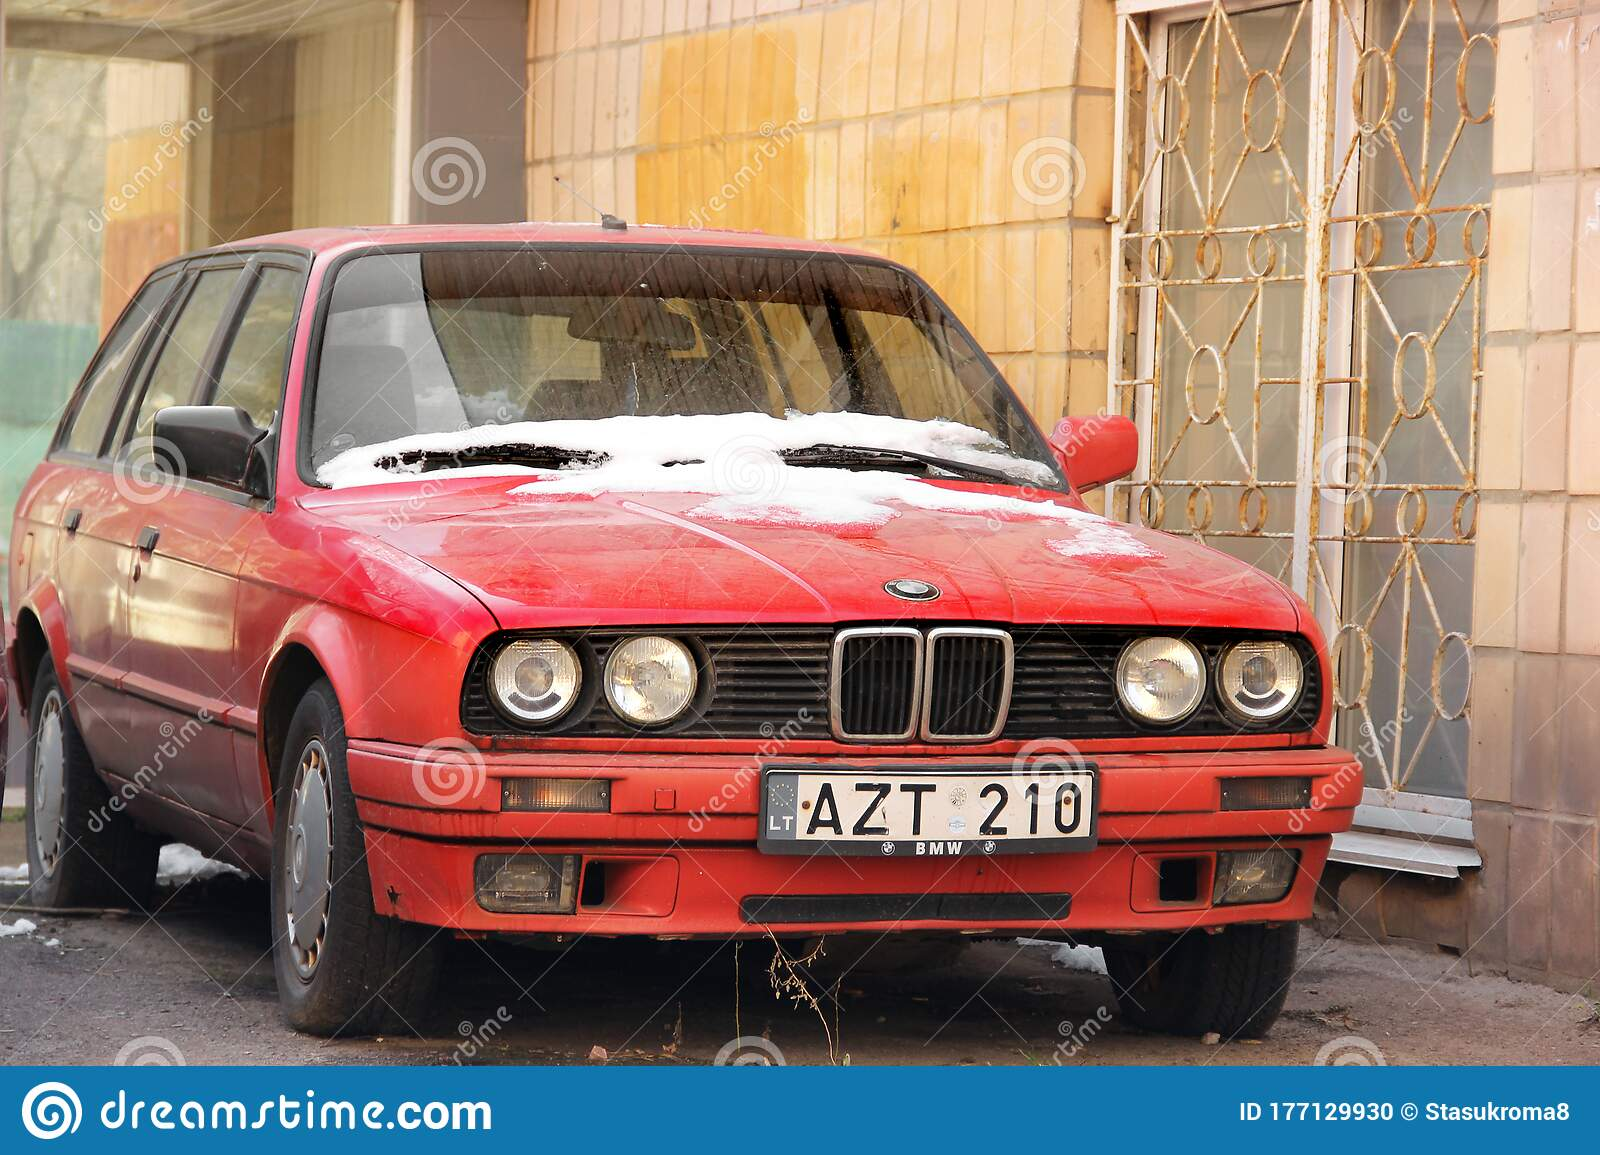 Chernihiv Ukraine March 31 2020 Old Red Bmw Car In The City Editorial Image Image Of Power Silver 177129930